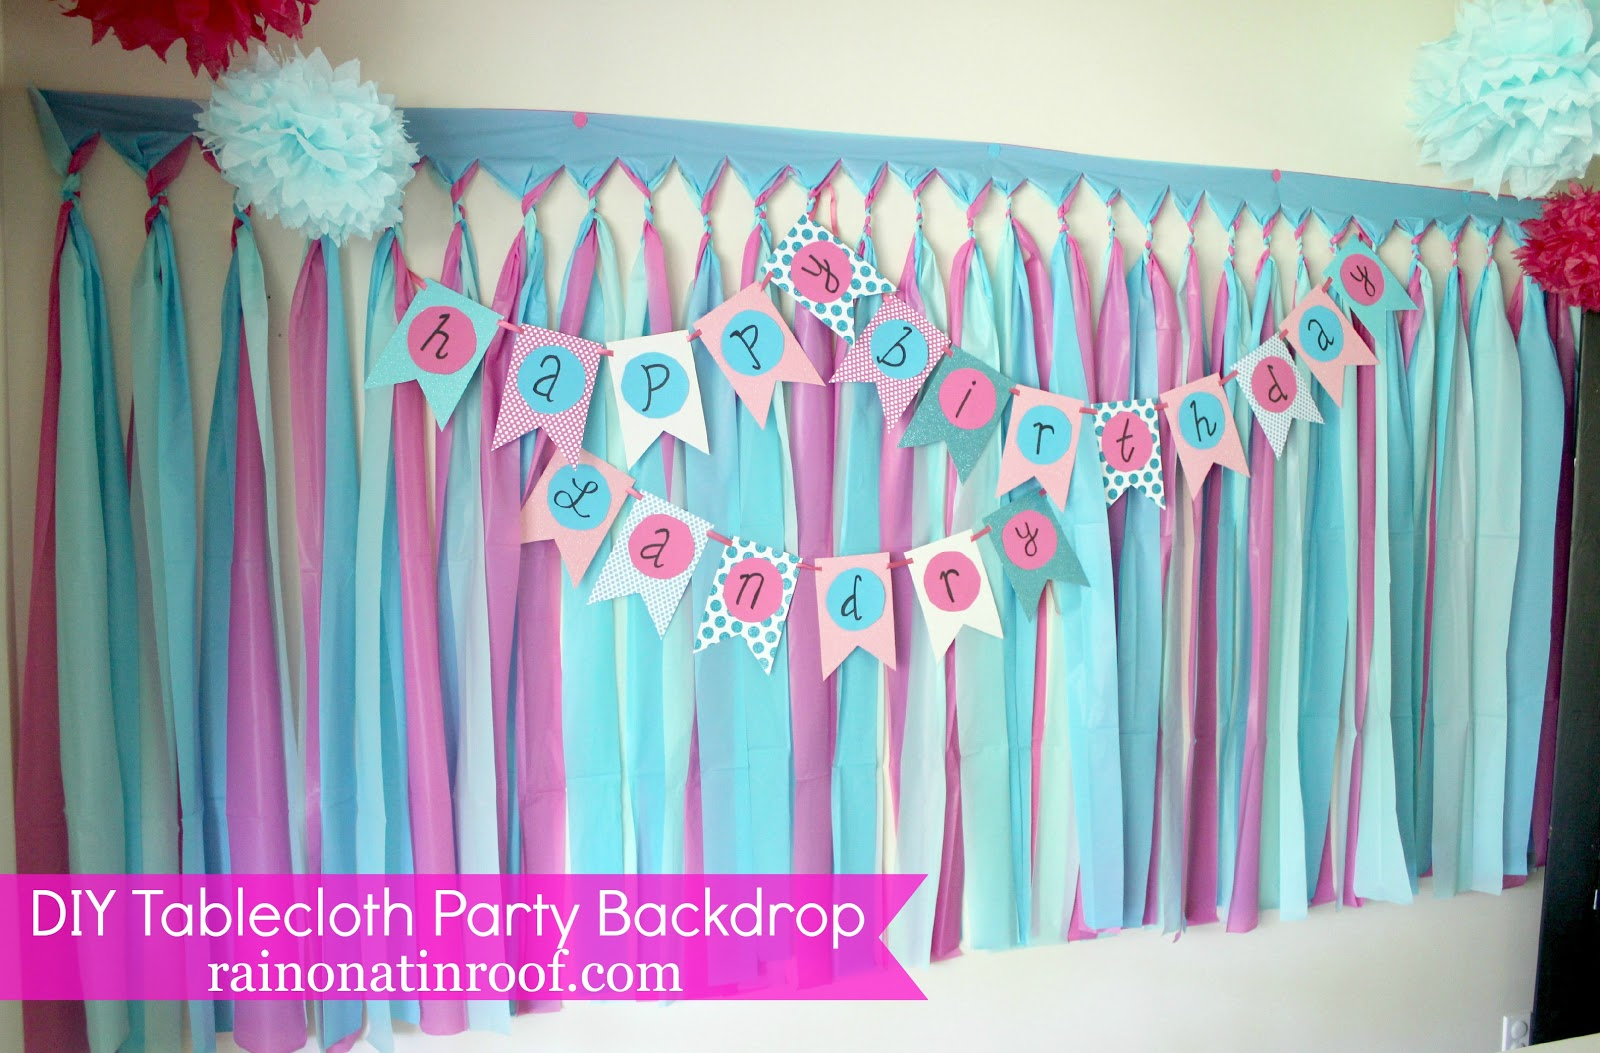 Cheap And Easy Party Background With Tablecloths Rain On